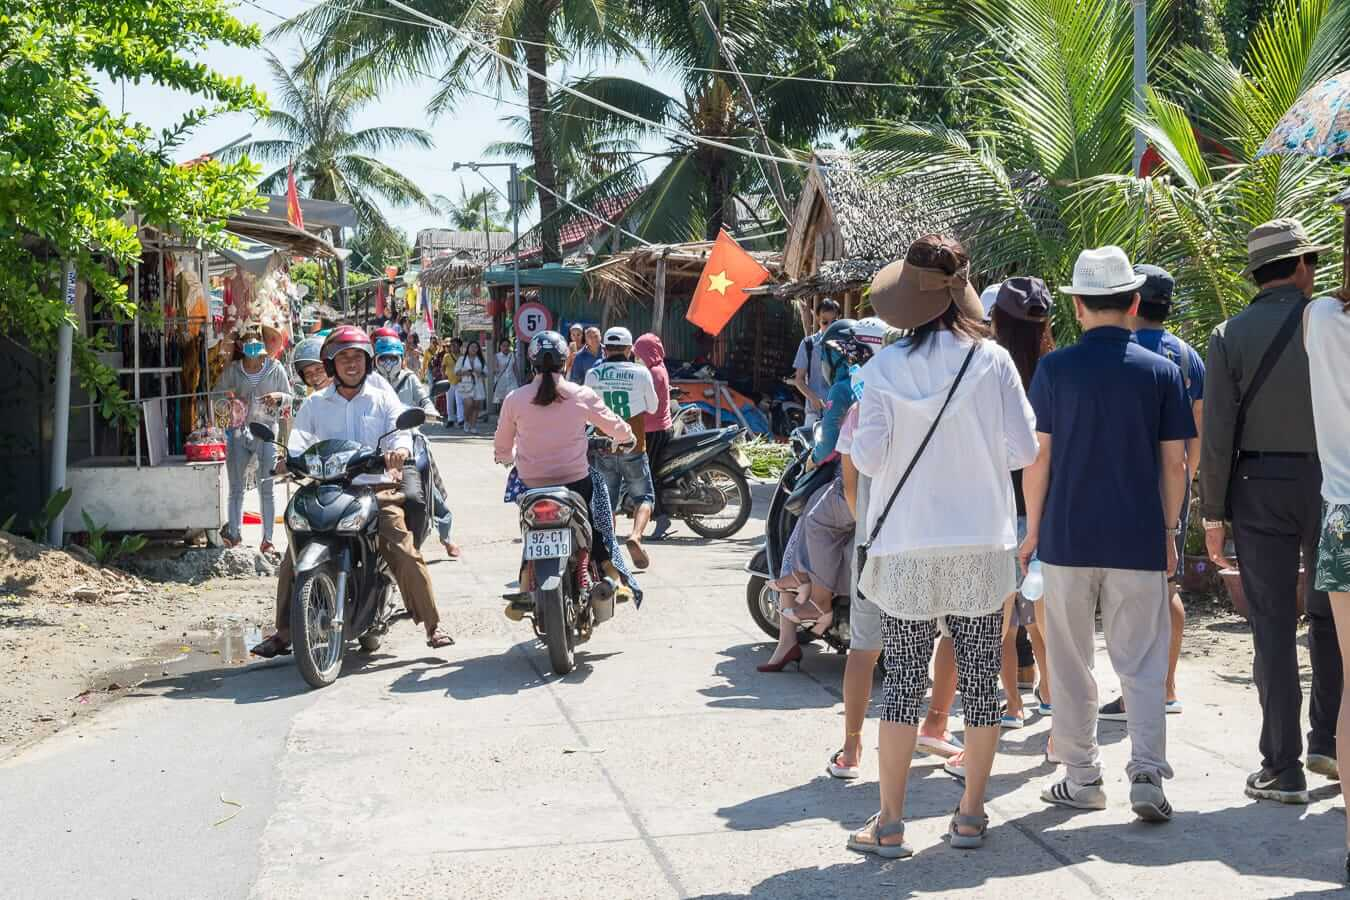 The Coconut Village is full of tourists